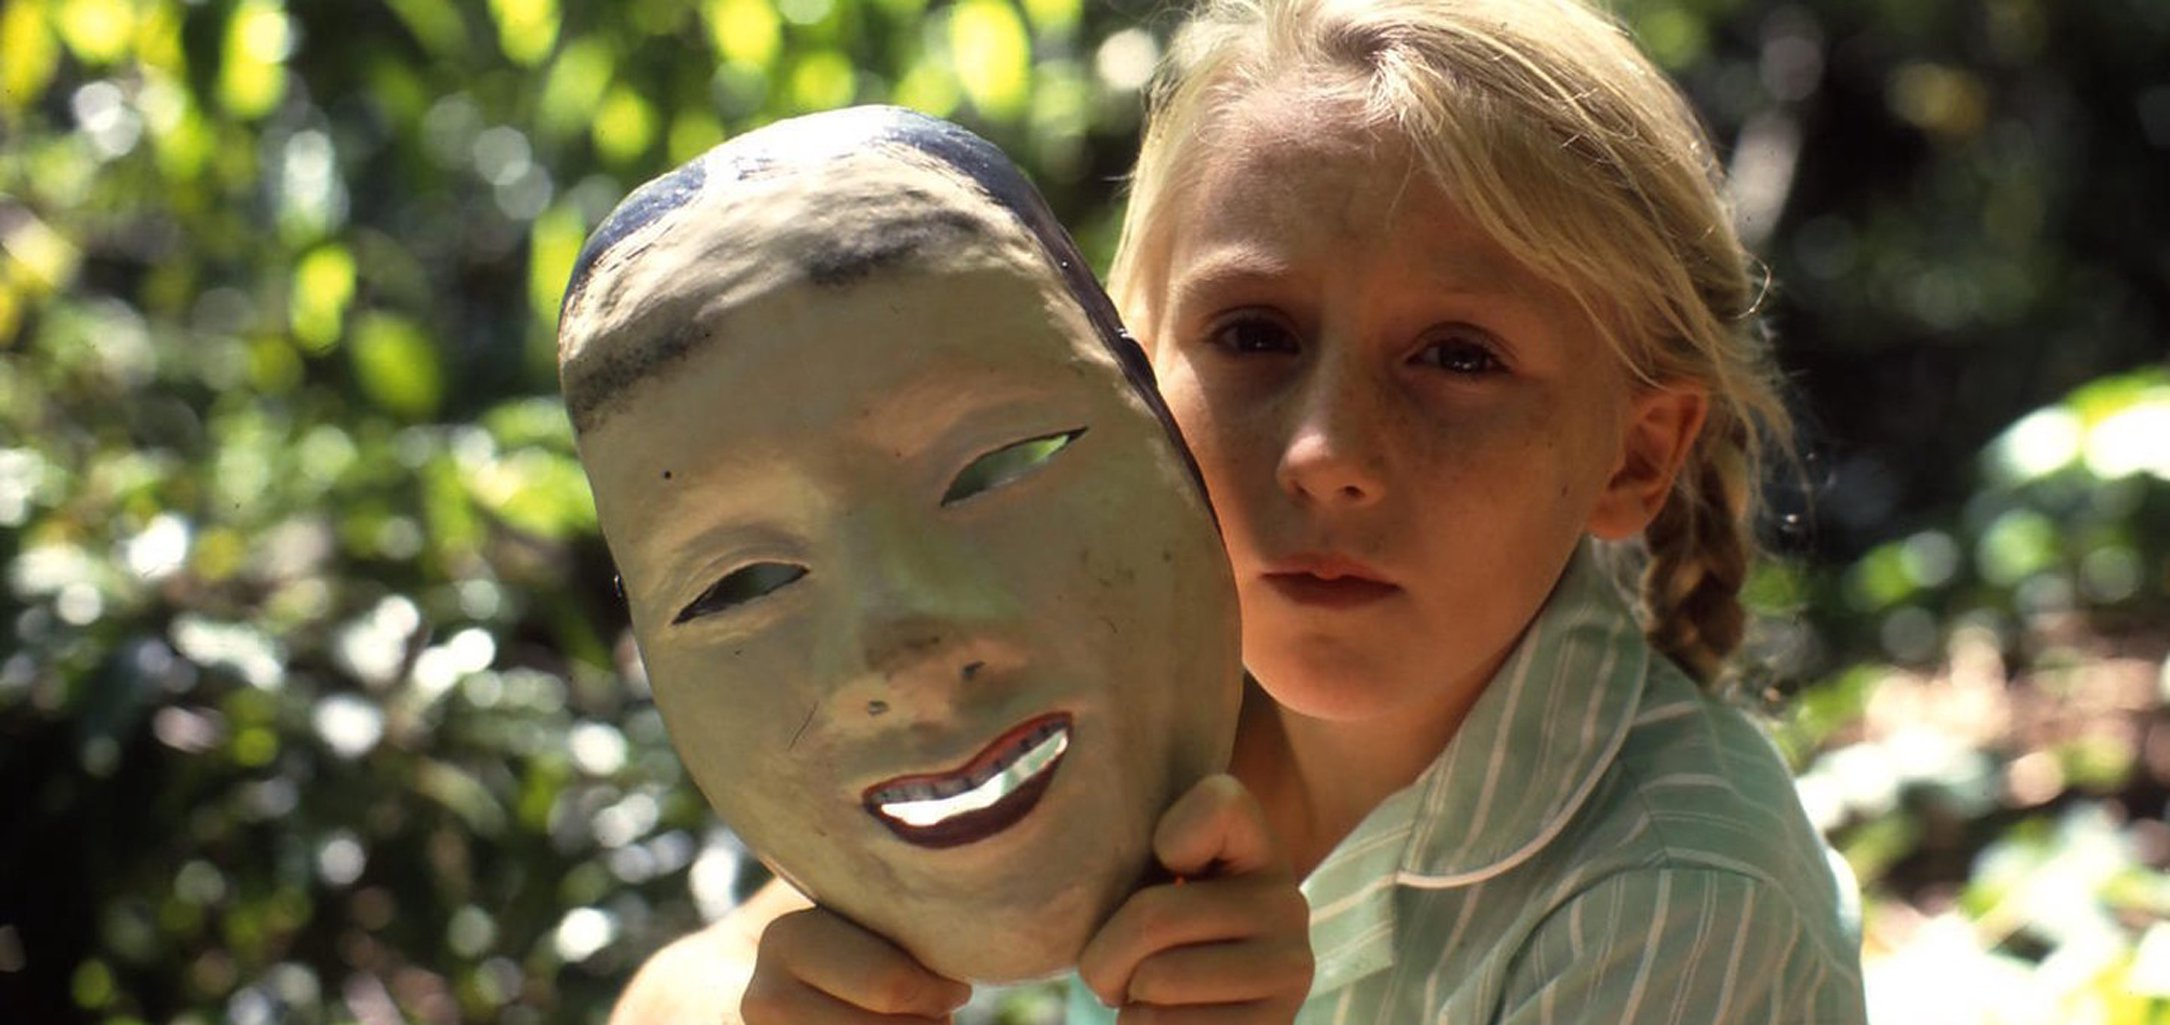 Rebecca Smart as Celia holding a mask in a still from Celia (1989)